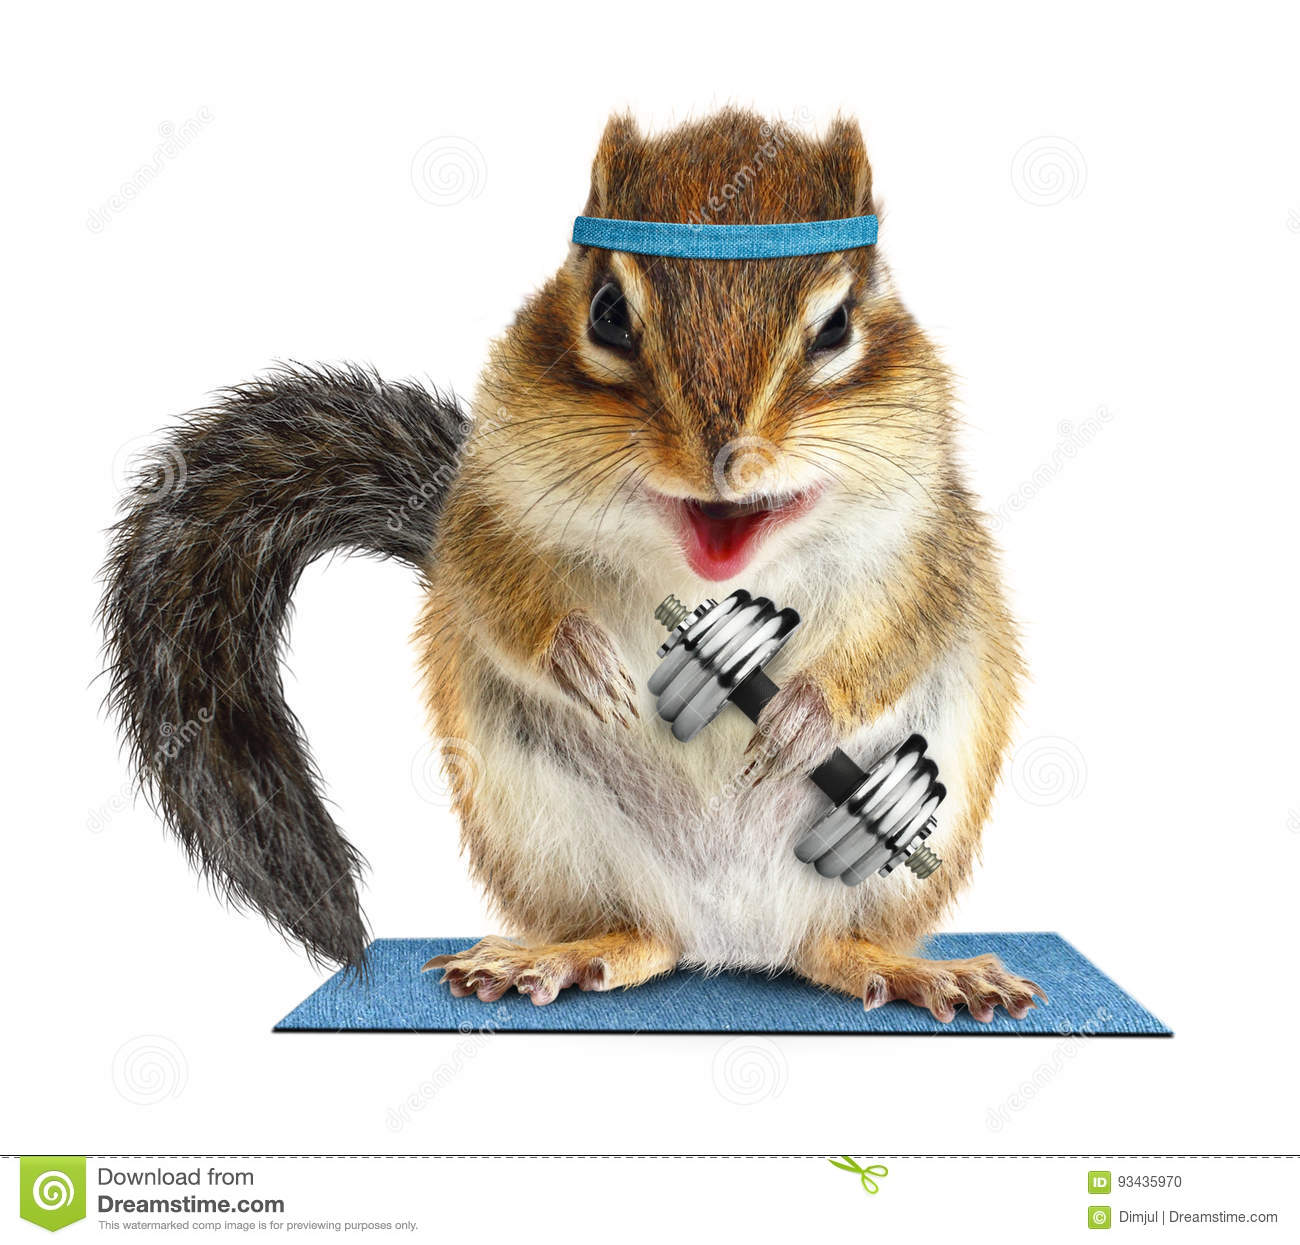 Funny fitness, animal chipmunk lifting dumbbell